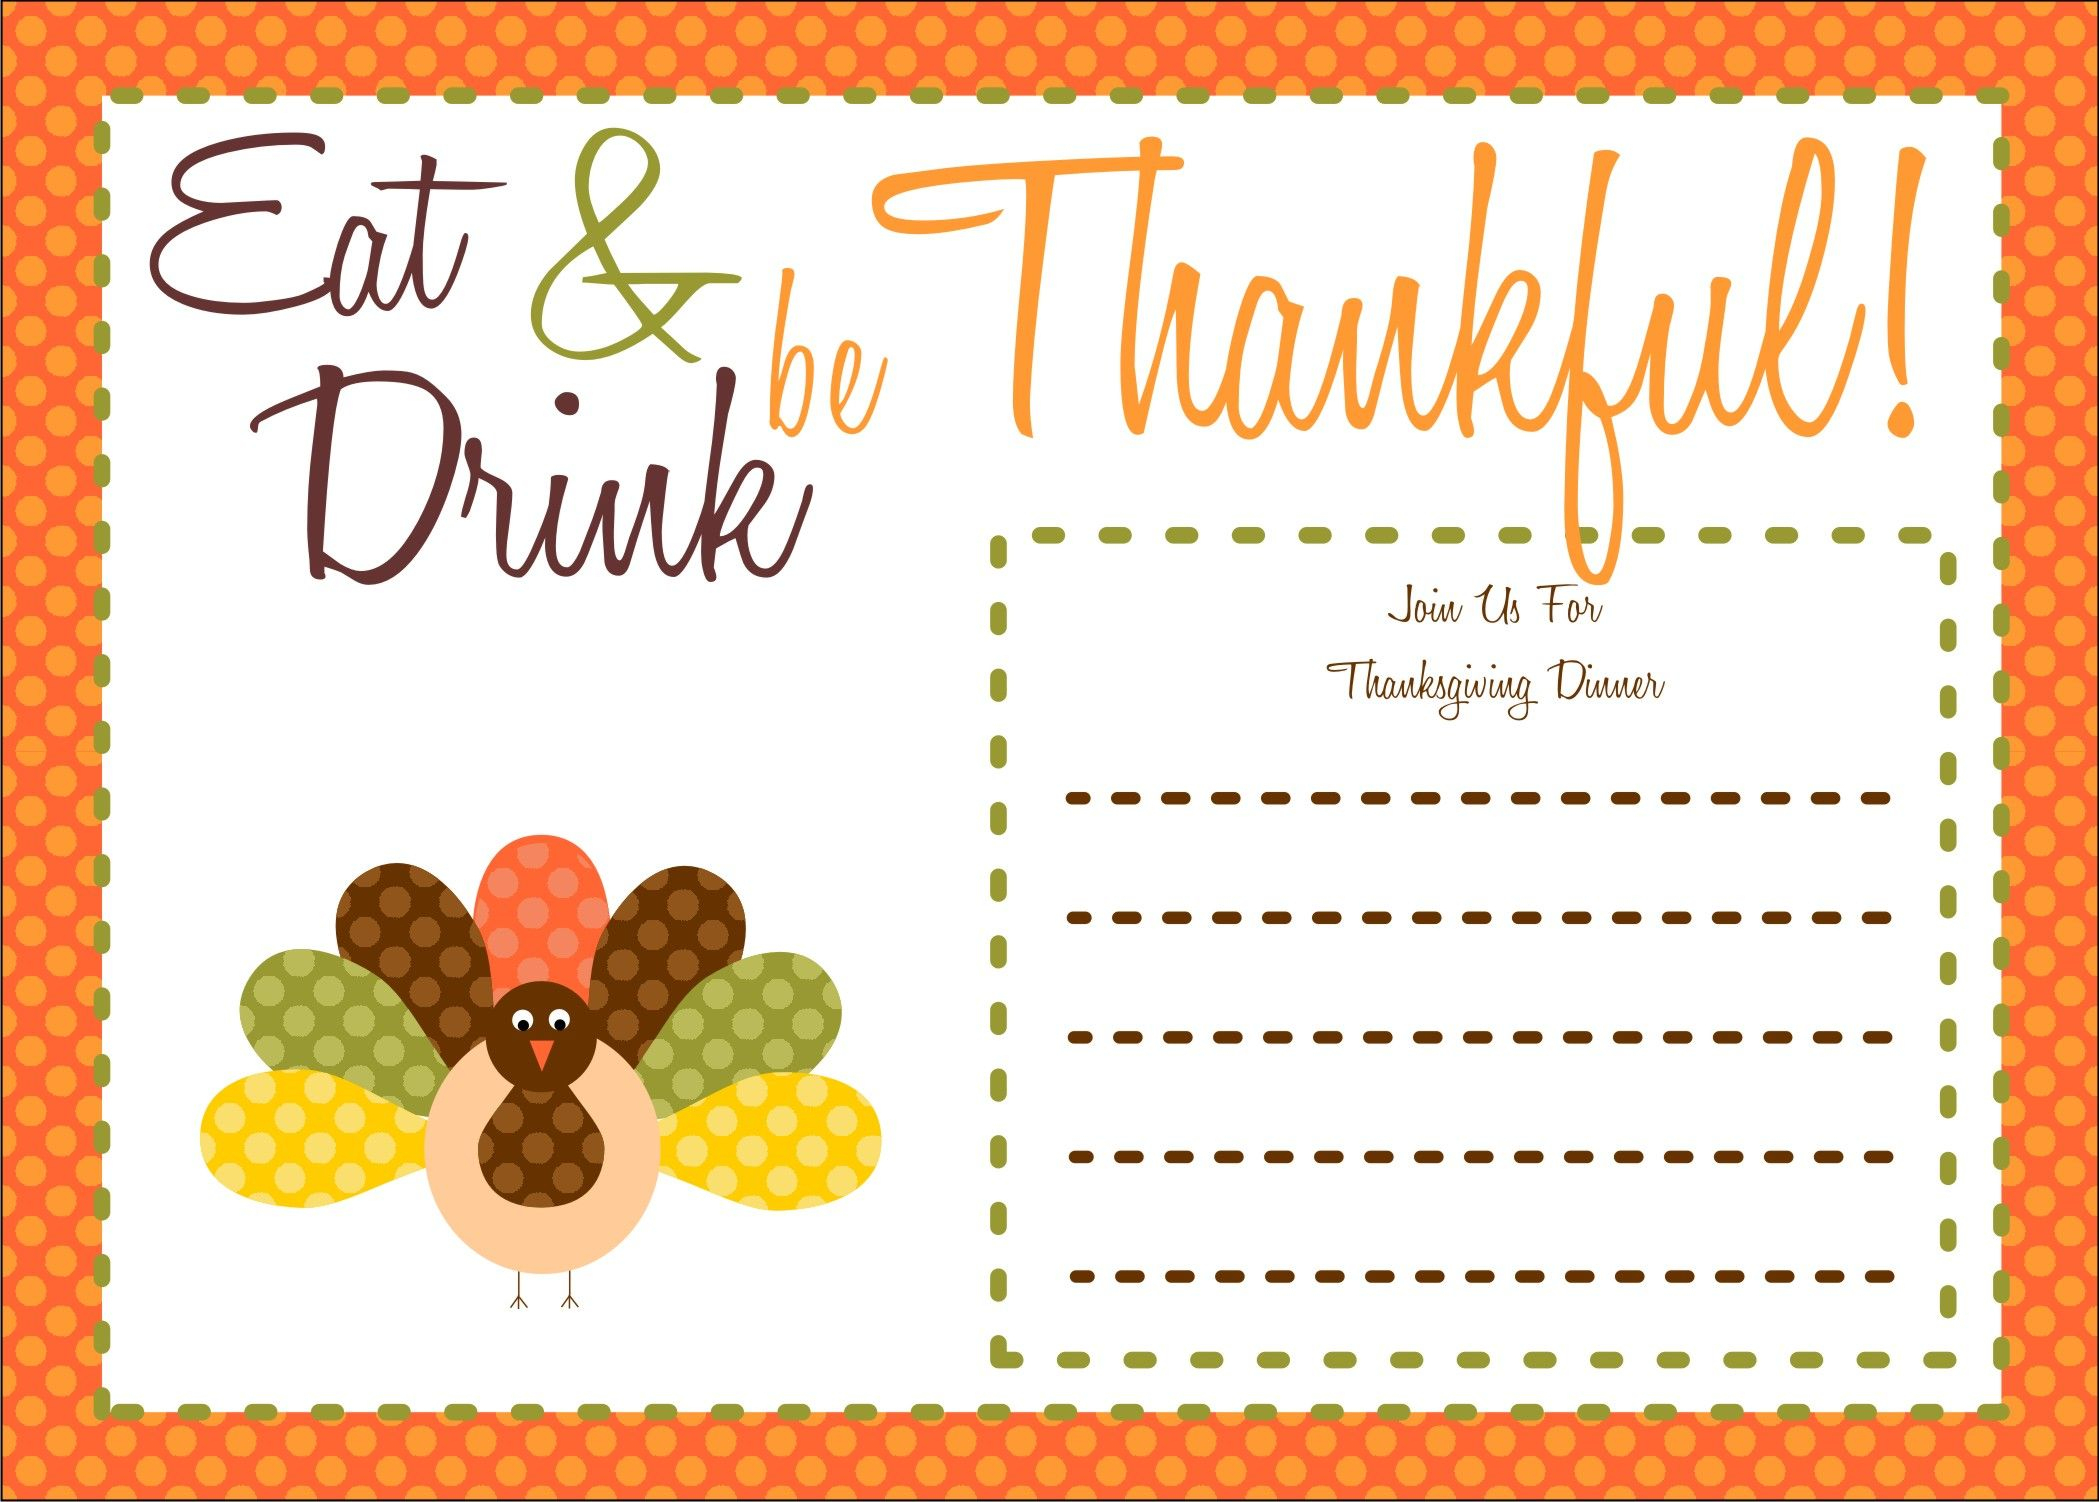 Free Thanksgiving Printables From The Party Bakery | Free Printables - Free Printable Thanksgiving Invitations